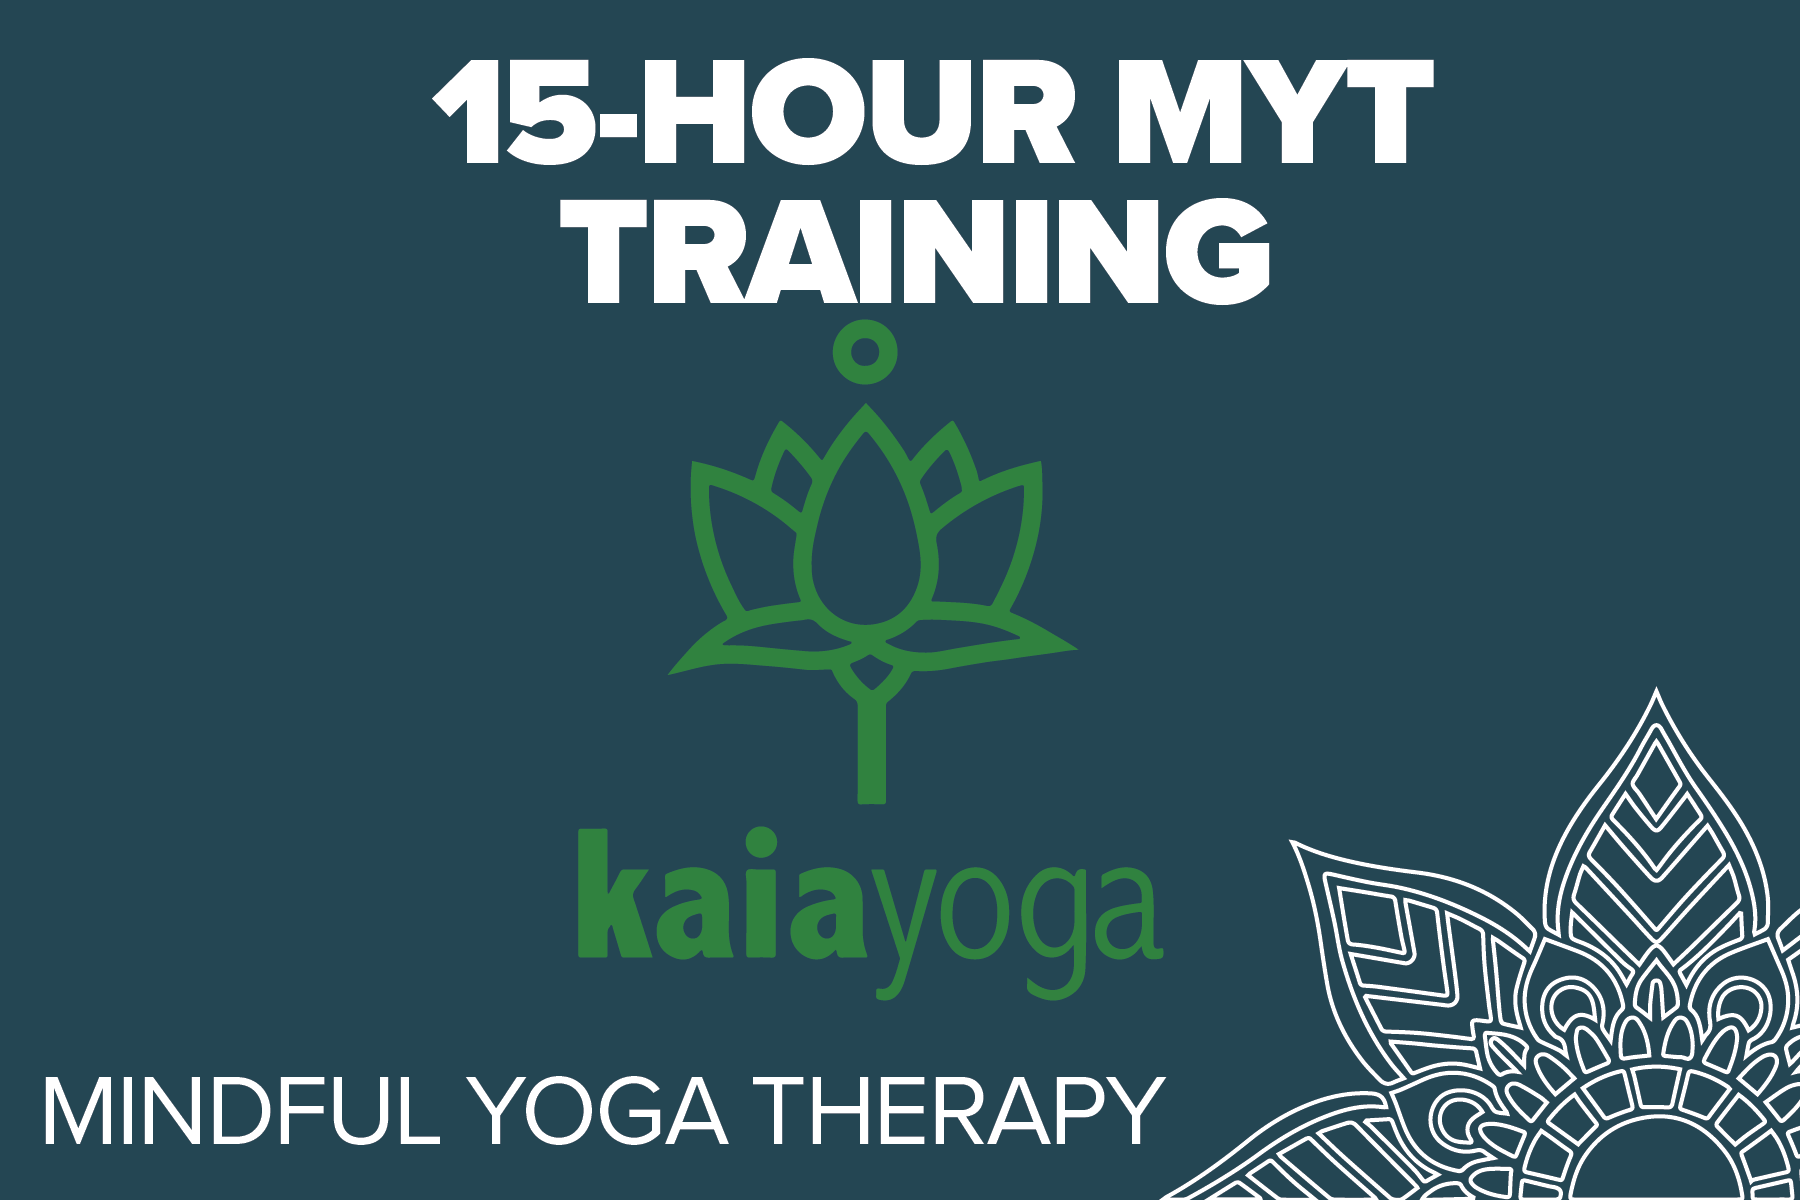 Kaia Yoga - Mindful Yoga Therapy is an empirically informed, clinically tested program comprised of five practices: Pranayama (breathing), Asana (postures connected with breath), Yoga Nidra, Meditation, and Gratitude.REGISTRATION COMING SOON!